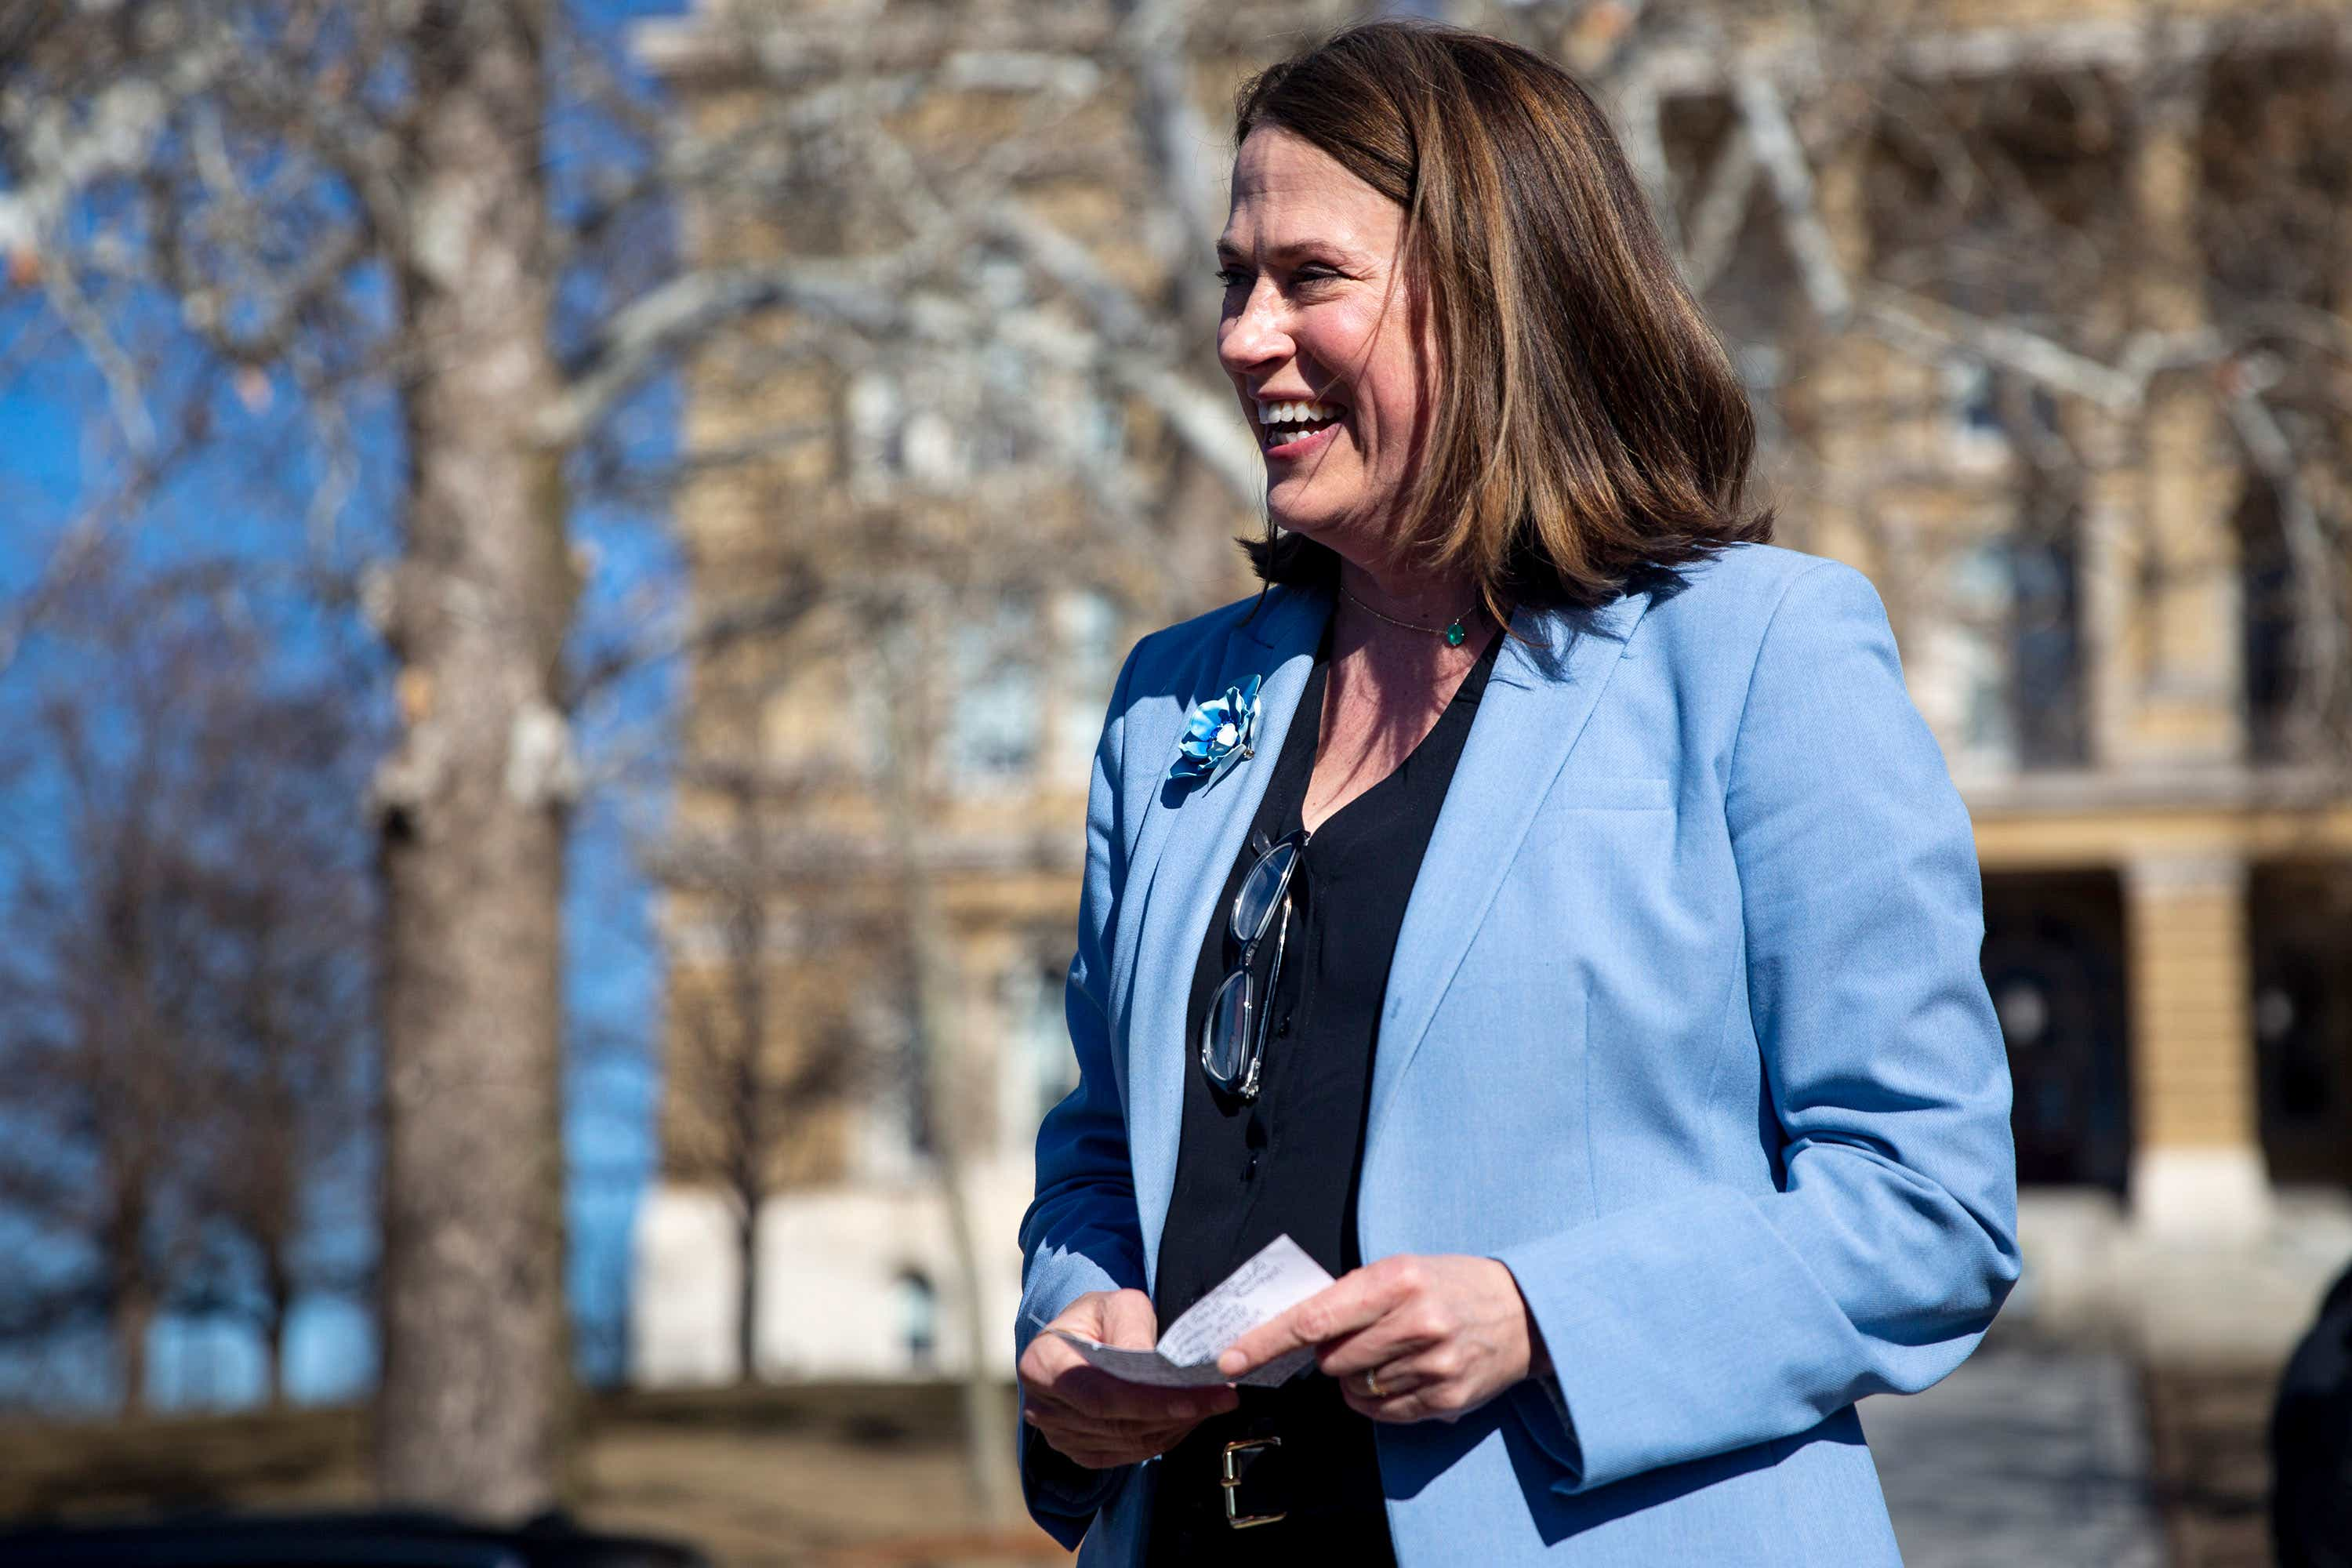 , IA-Sen: Fight For Progress Helps Theresa Greenfield (D) Tear Apart Moscow Mitch's Majority, The Politicus